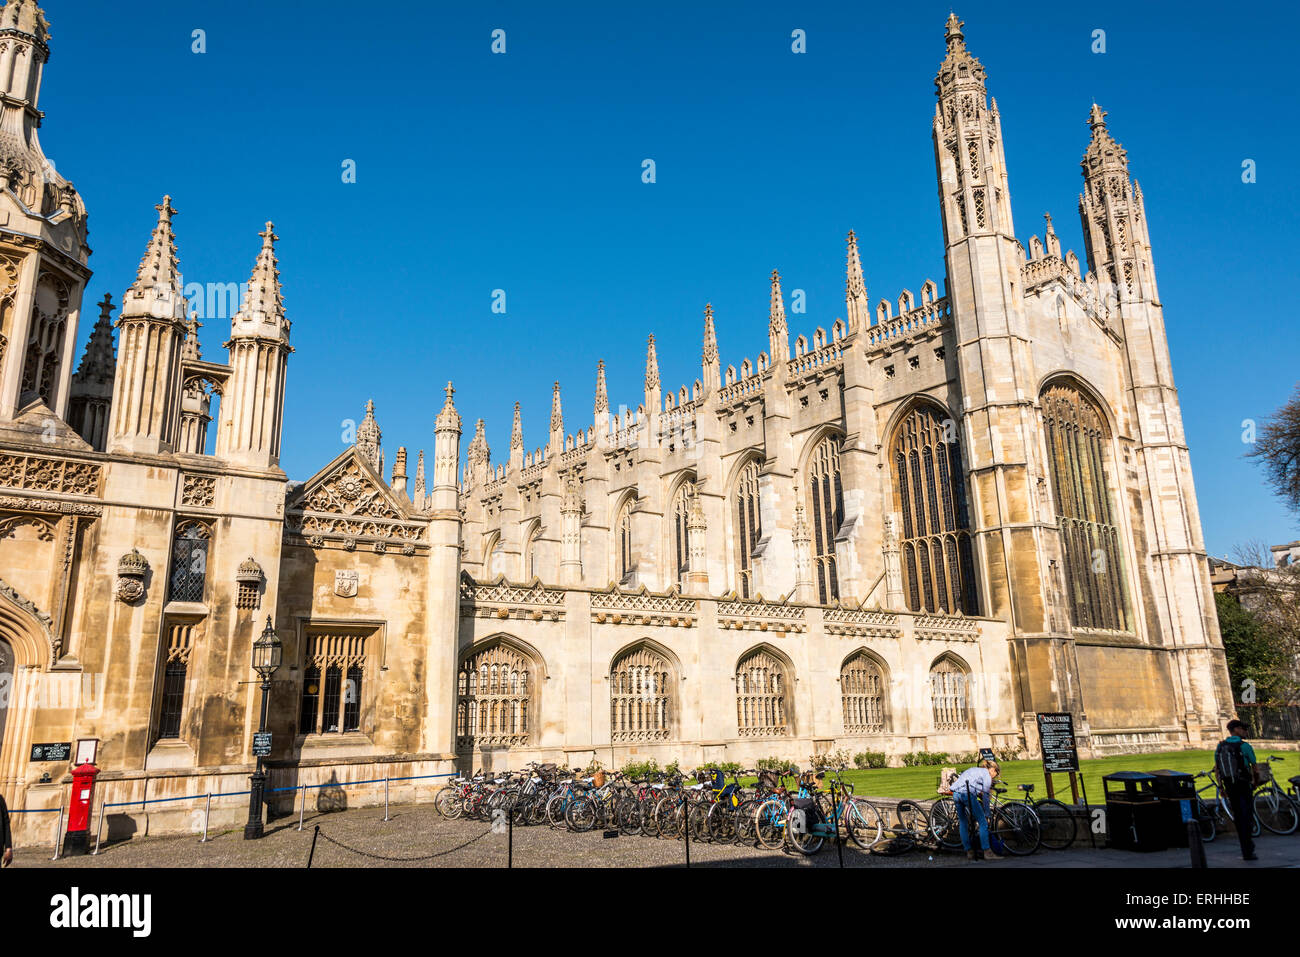 King's College of Cambridge University in the UK - Stock Image